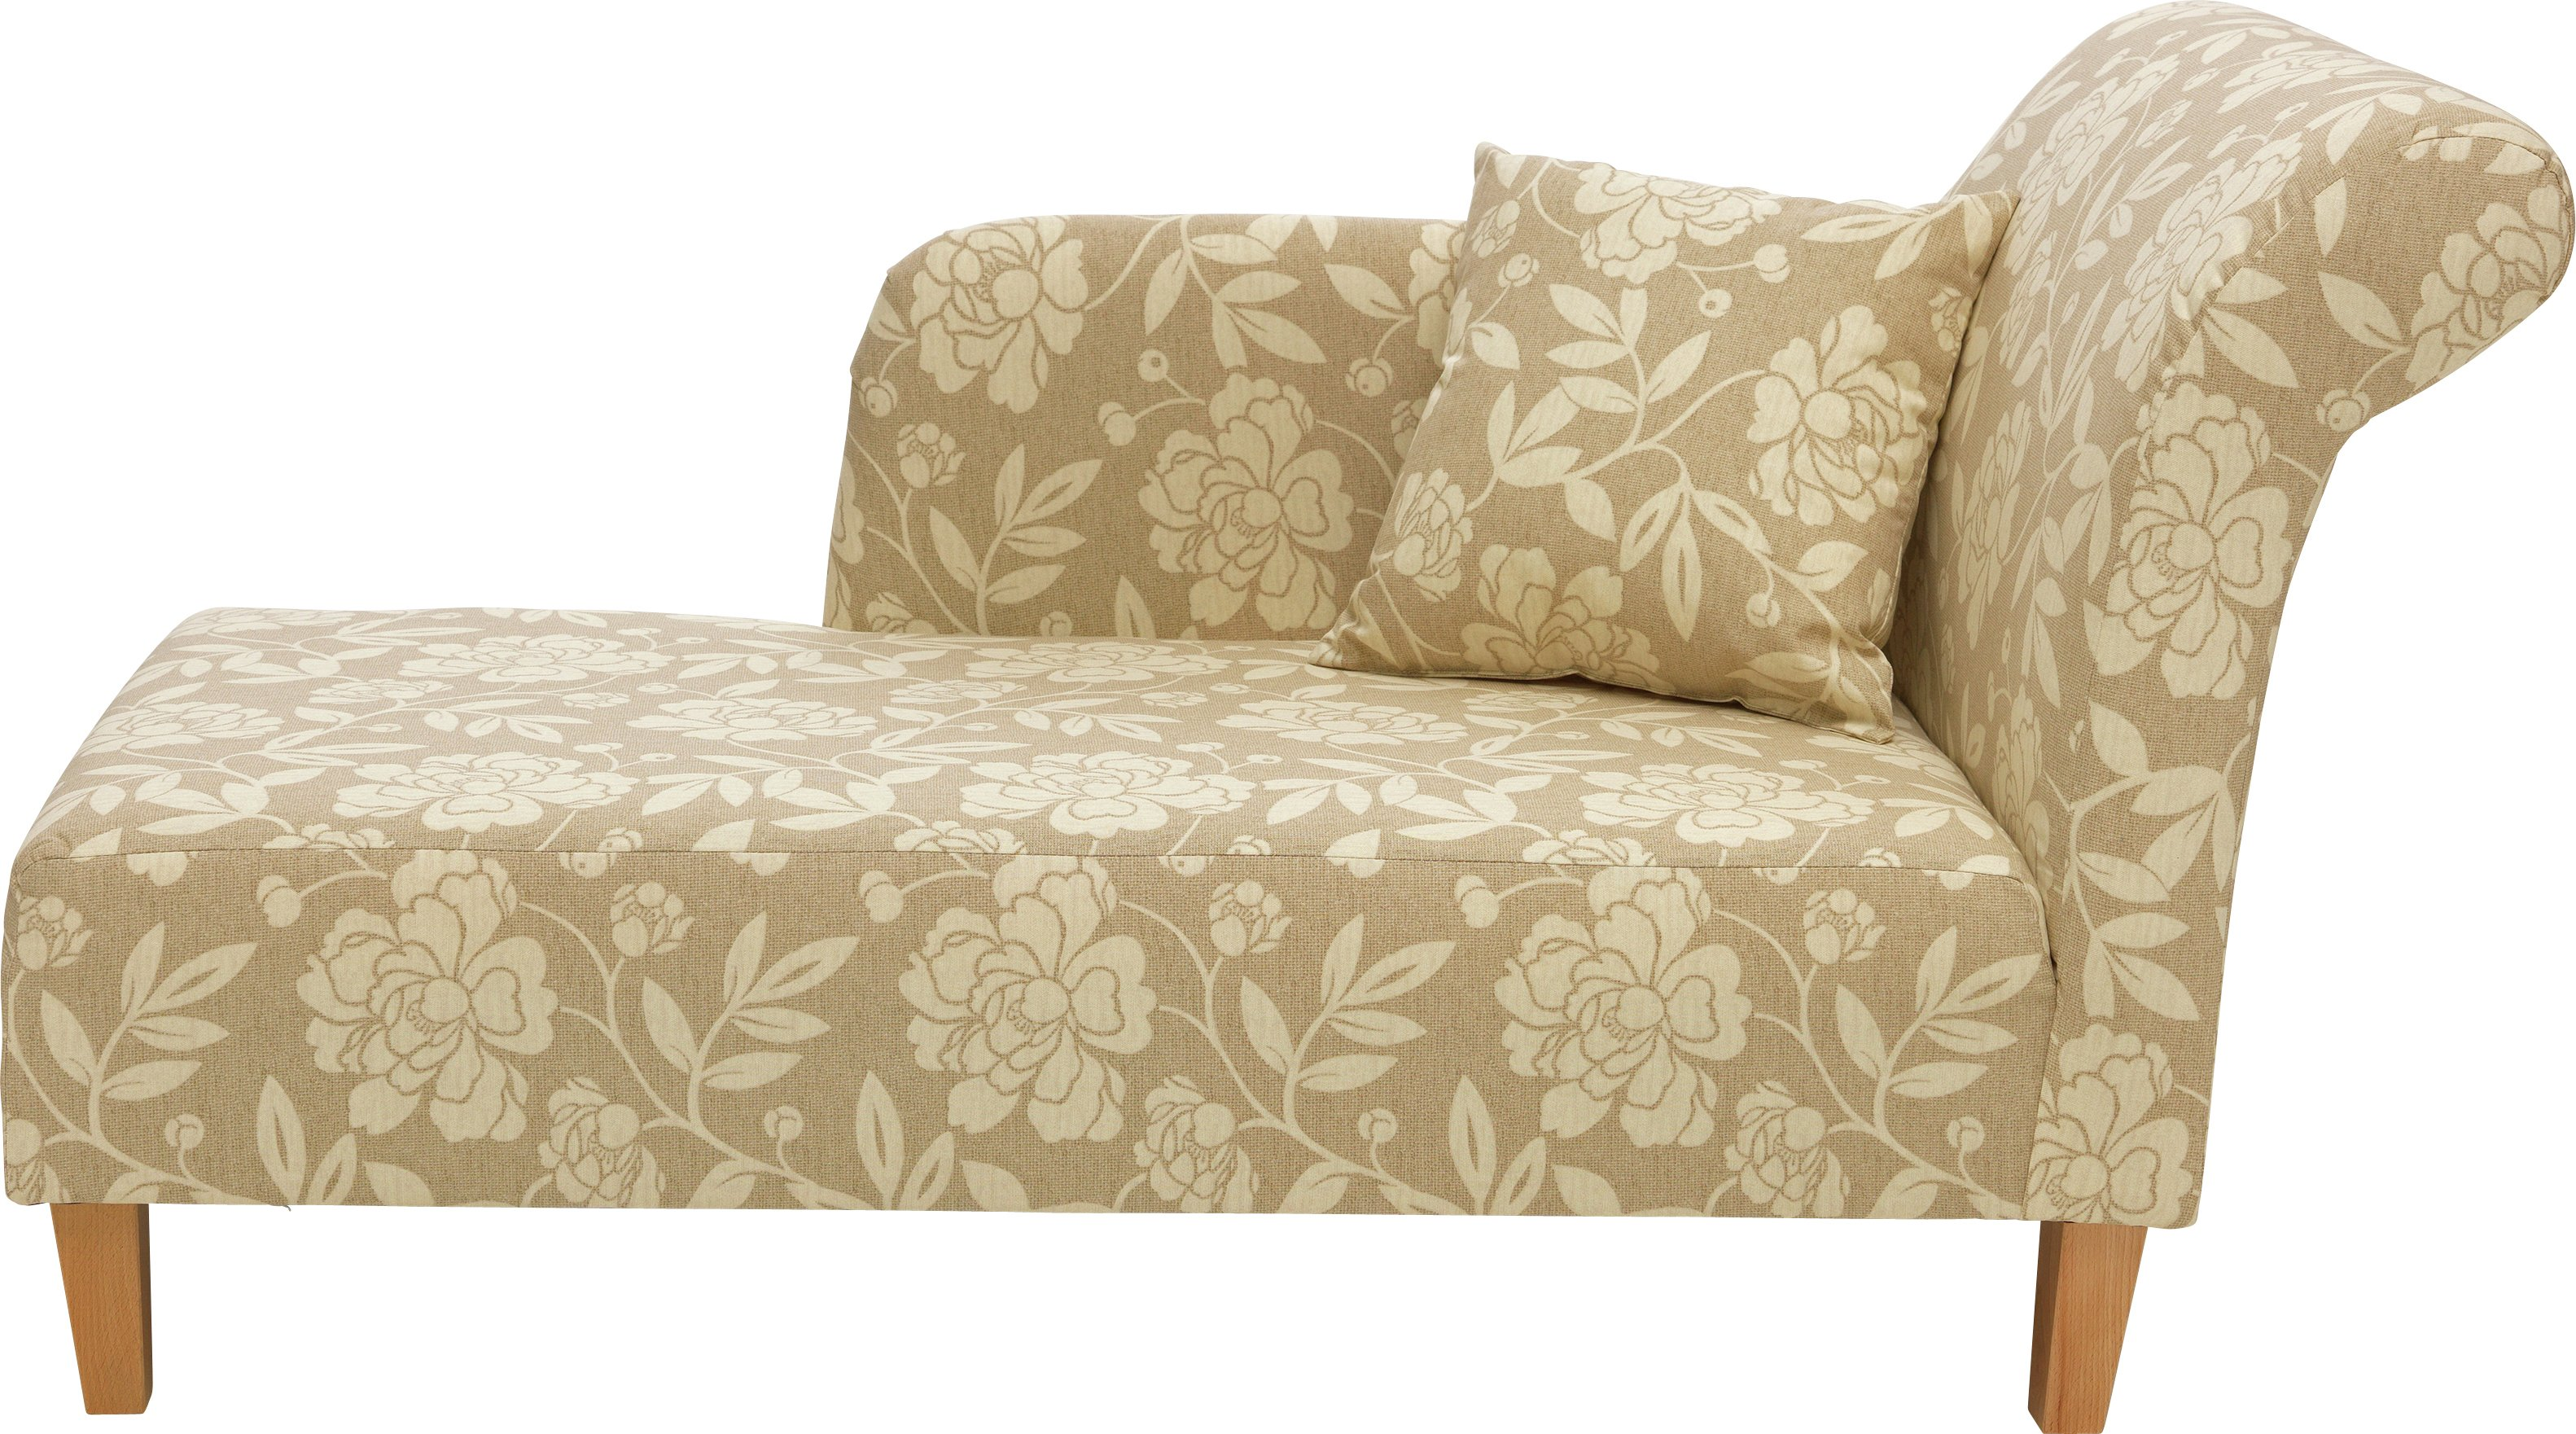 Buy HOME Floral Fabric Chaise Longue - Natural at Argos.co.uk - Your Online Shop for Sofas Living room furniture Home and garden.  sc 1 st  Argos : argos chaise lounge - Sectionals, Sofas & Couches